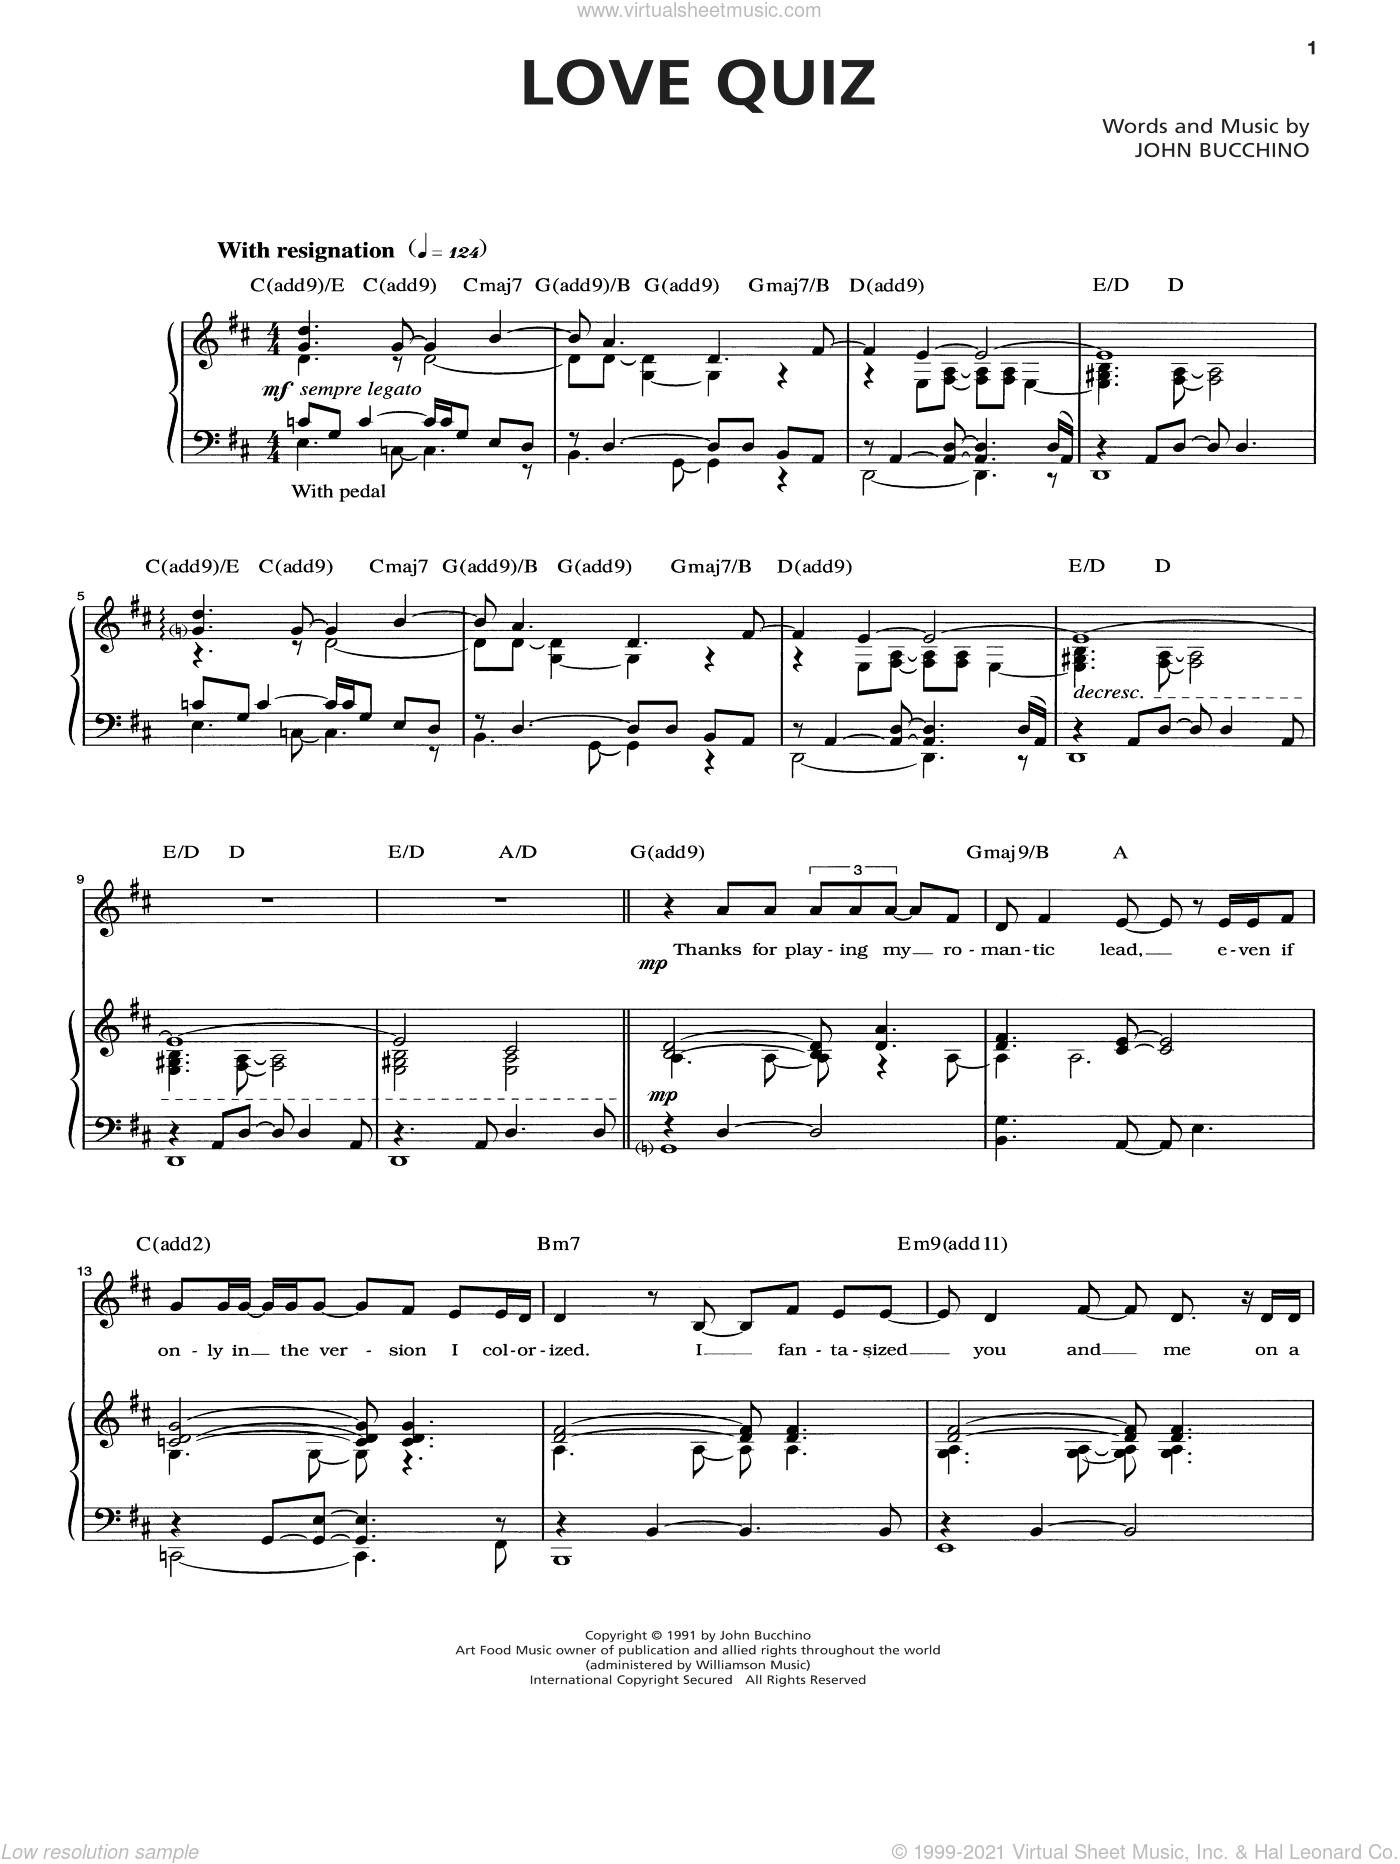 Love Quiz sheet music for voice and piano by John Bucchino. Score Image Preview.